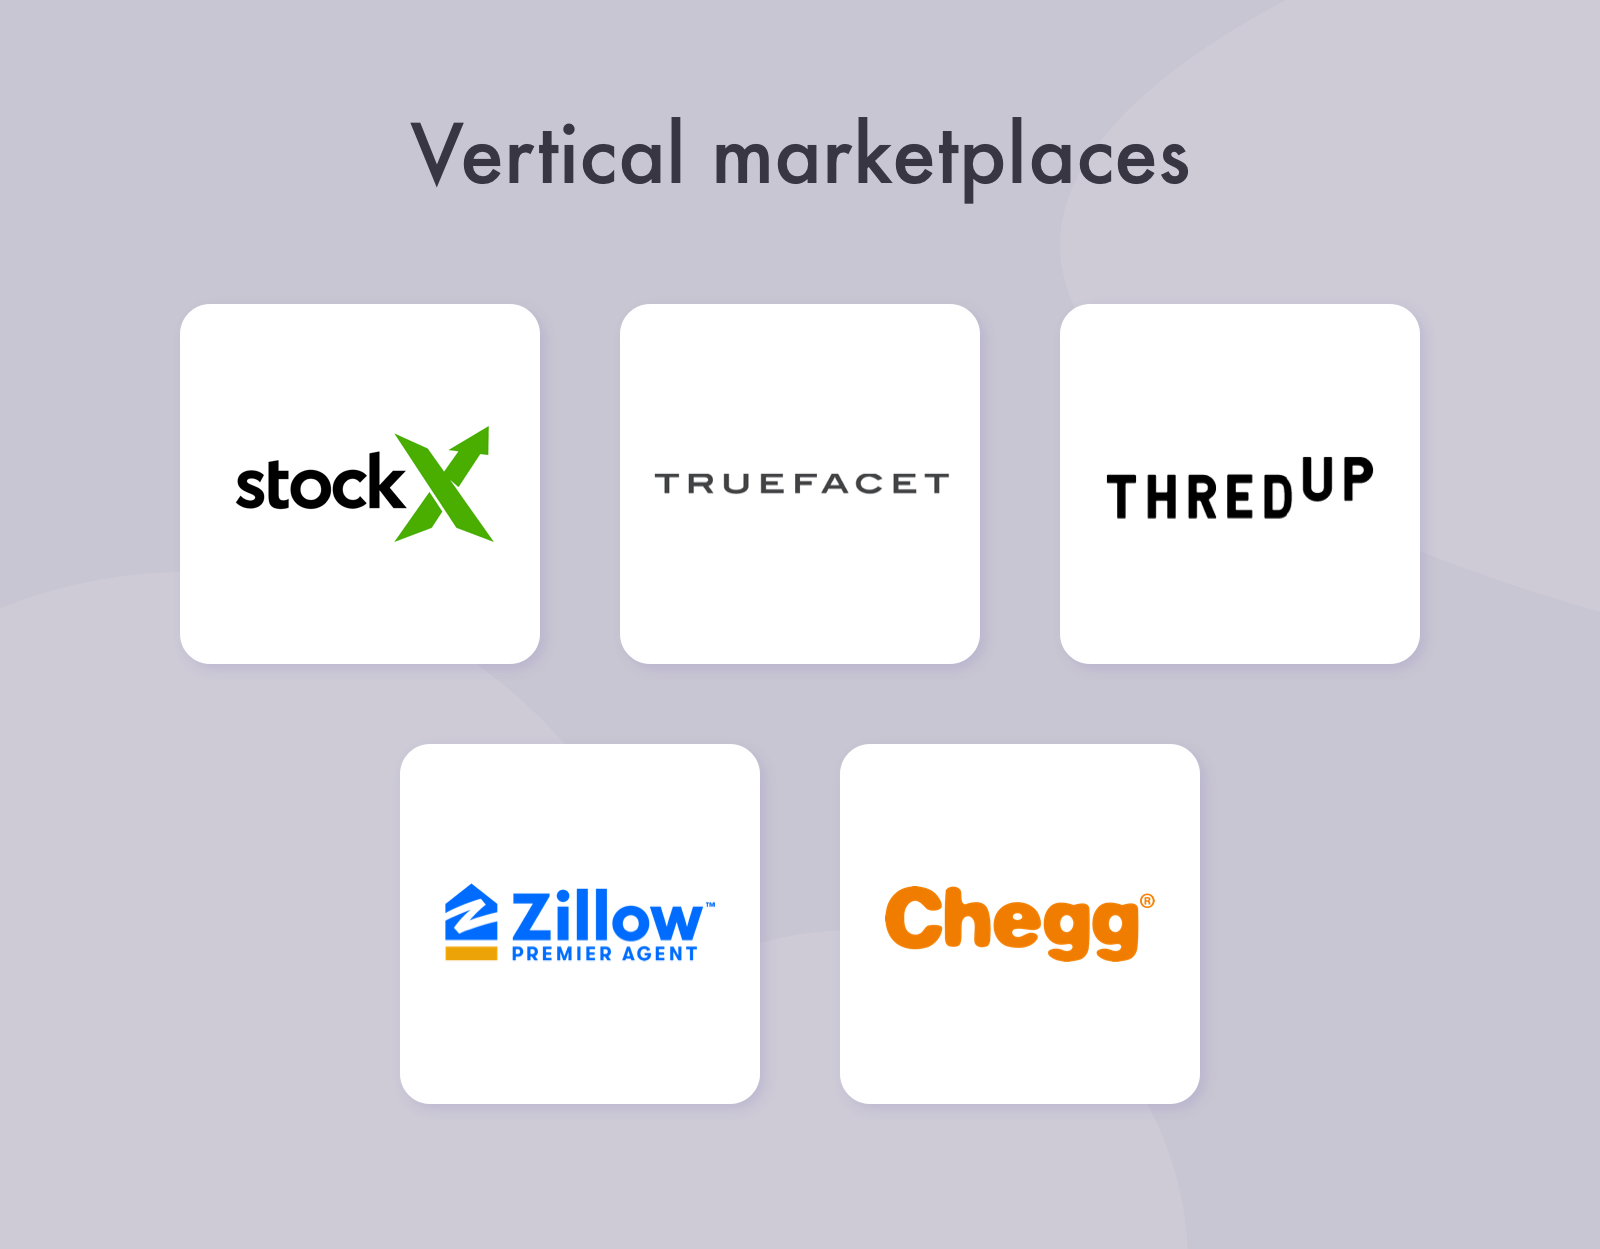 Vertical marketplace companies